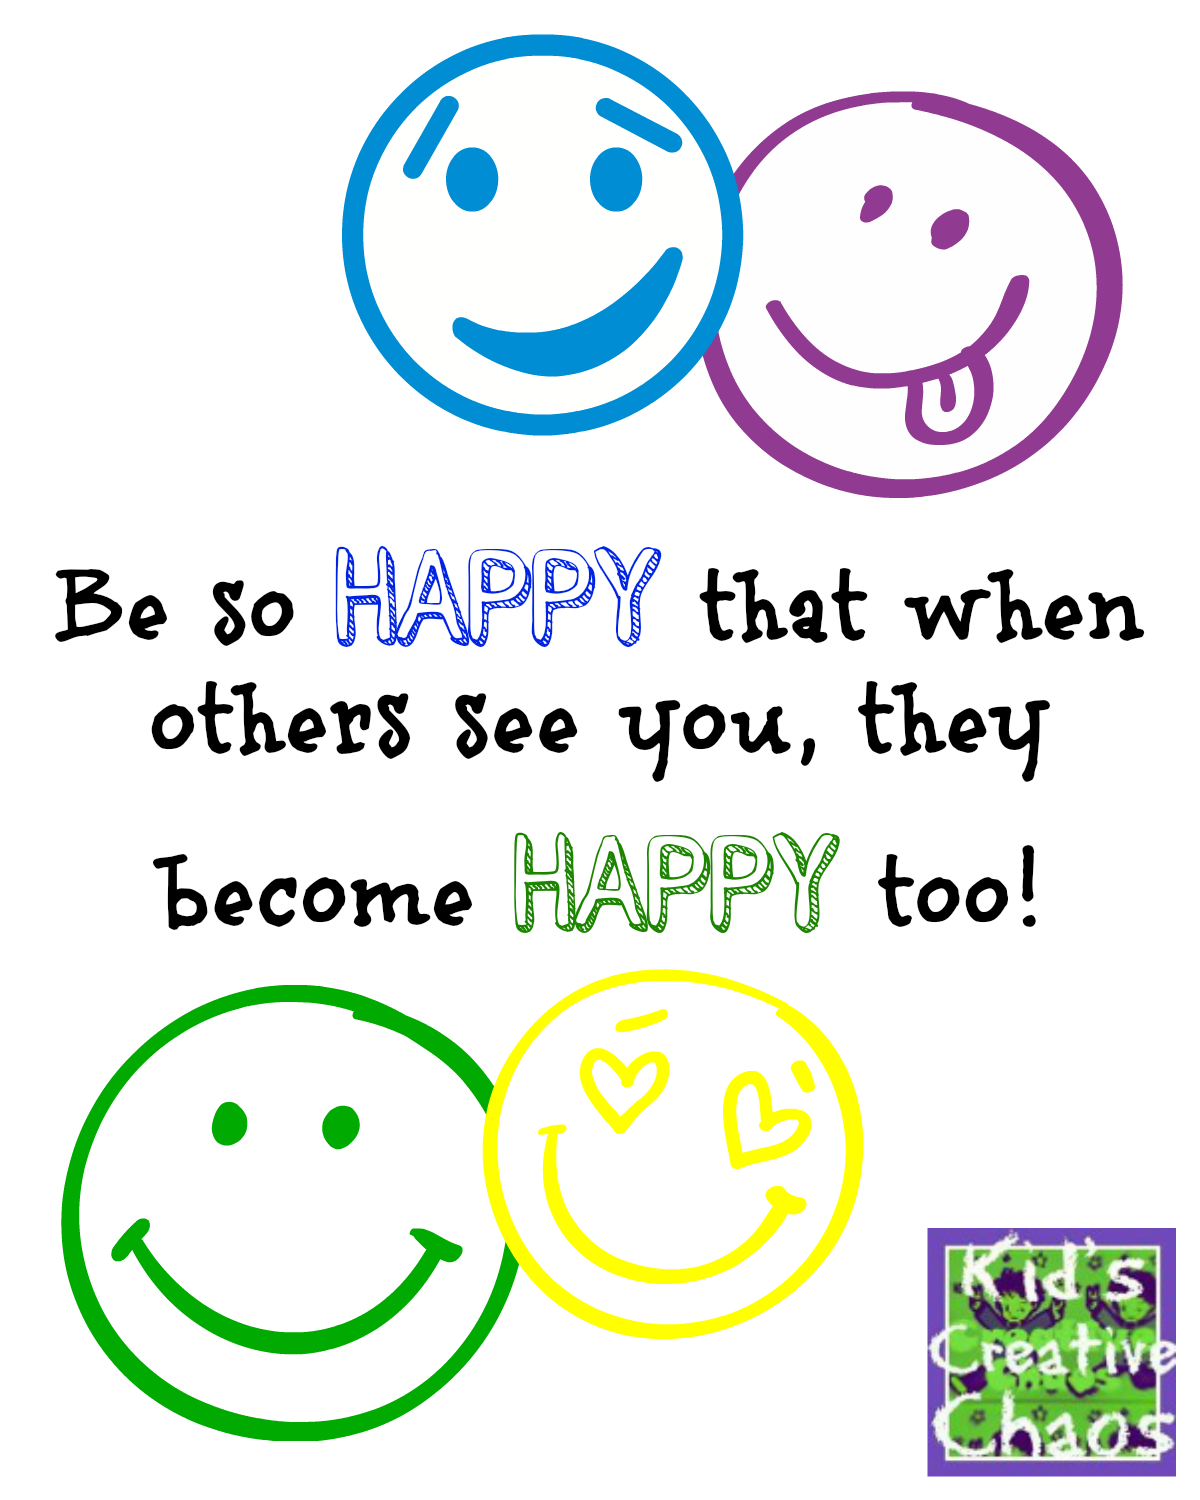 Quotes On Happiness Be Happy Happiness Quotes And Sayings  Kids Creative Chaos